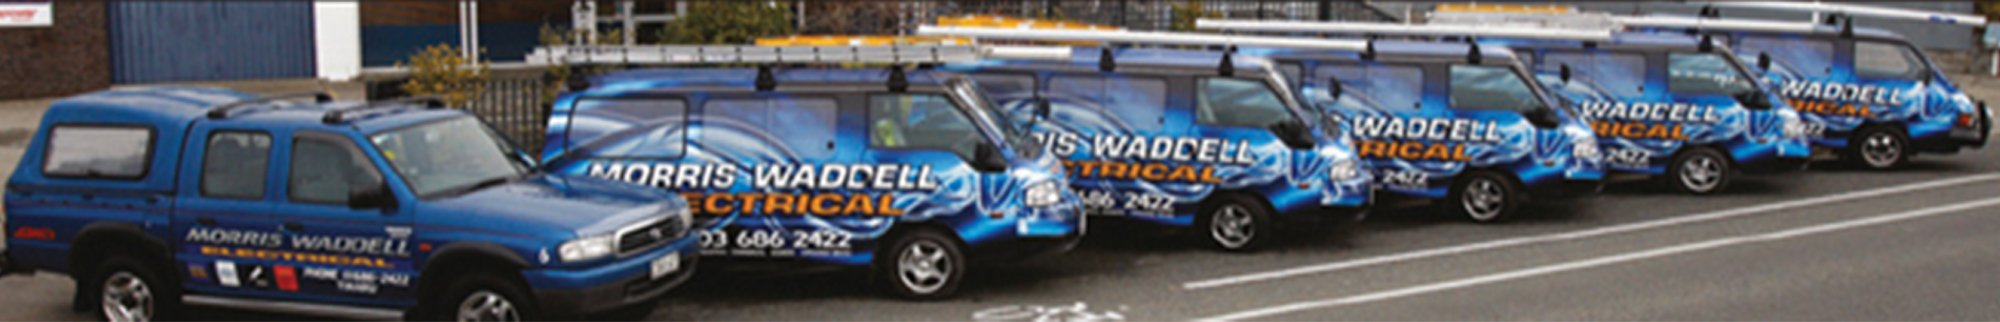 Morris Waddell electrical service